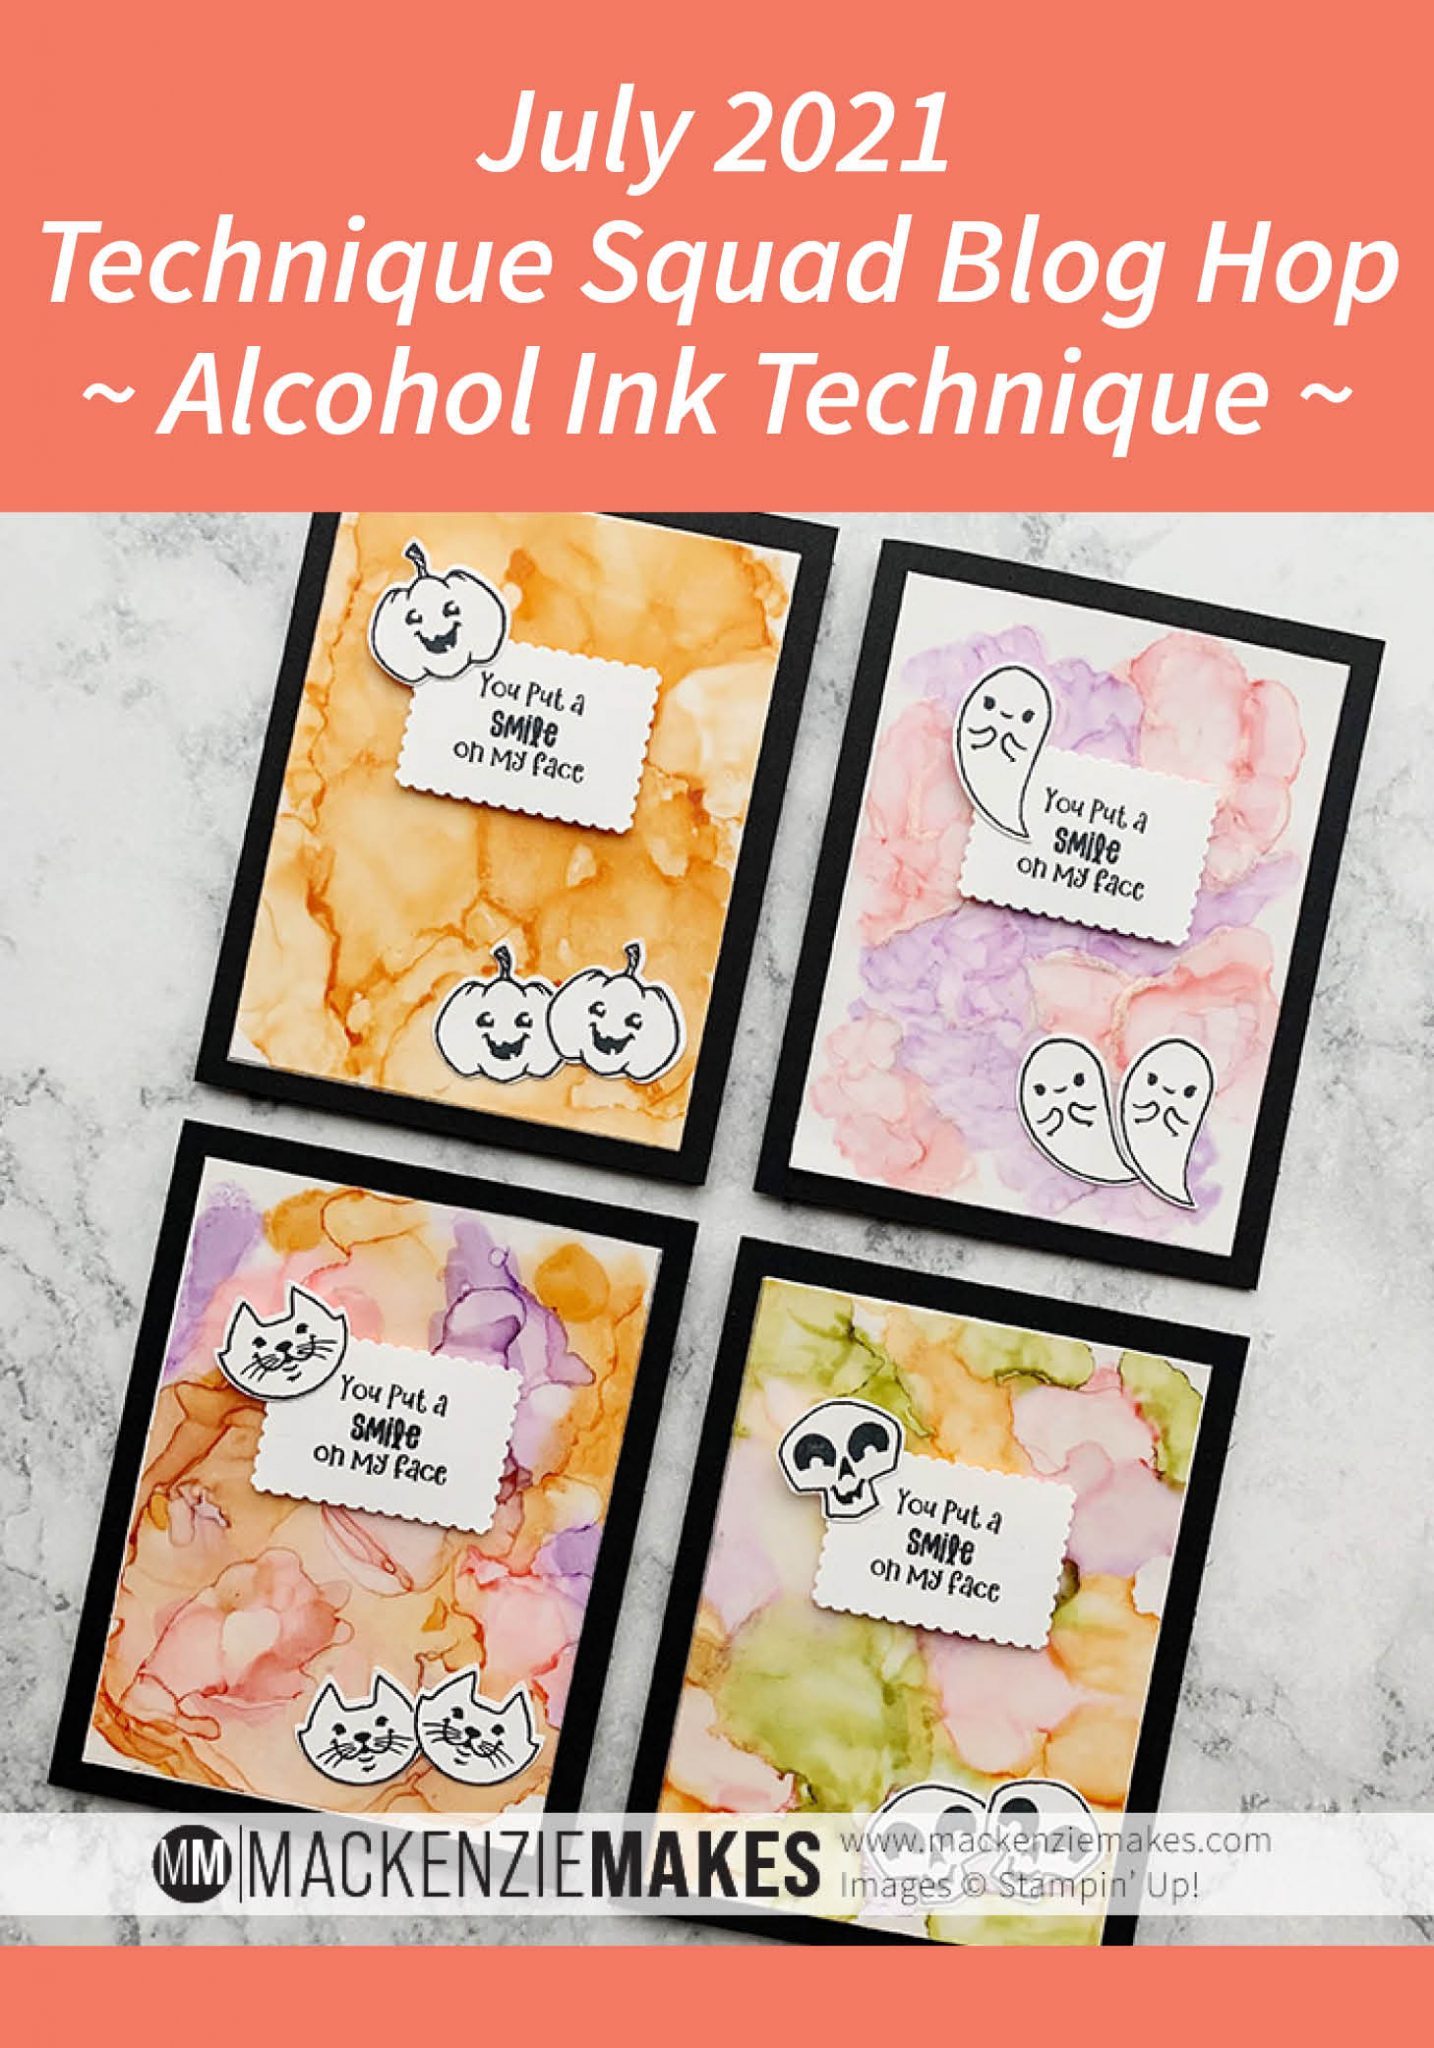 July 2021 Technique Squad Blog Hop - Alcohol Ink Technique – Learn how to make fun alcohol ink backgrounds for some cute Halloween cards. | #mackenziemakes #stampinup | www.mackenziemakes.com